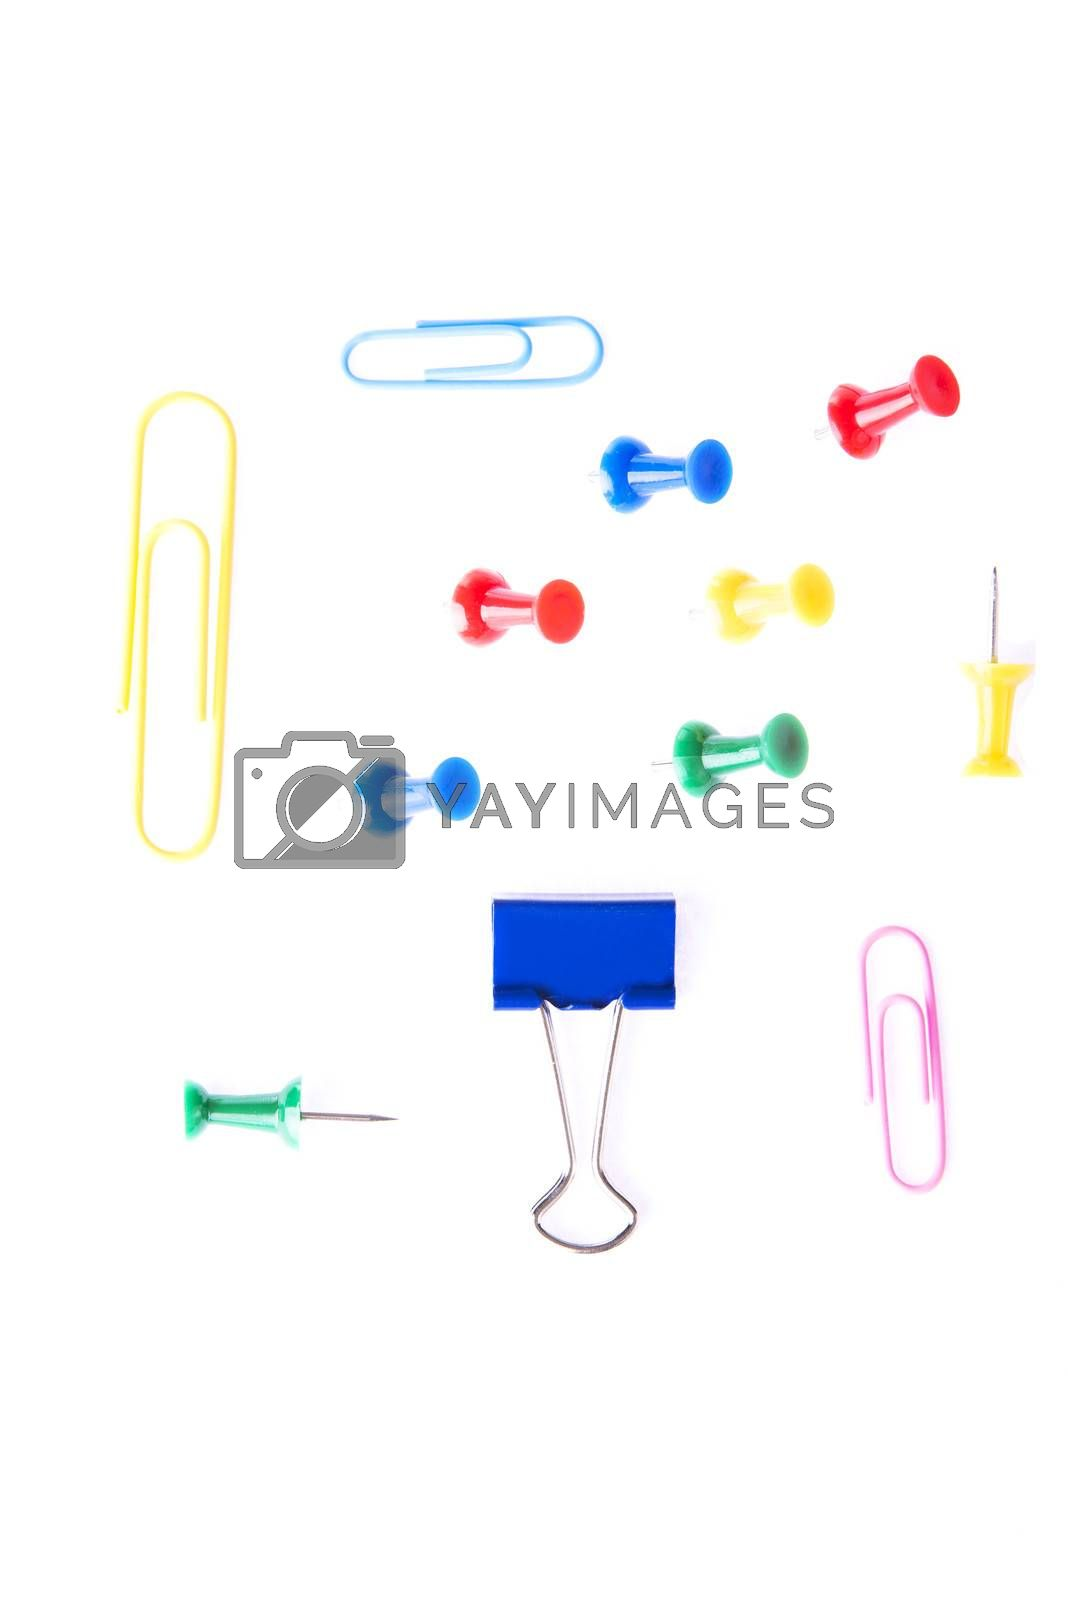 Royalty free image of Colorful office equimpent- clips and drawing pins. by BDS